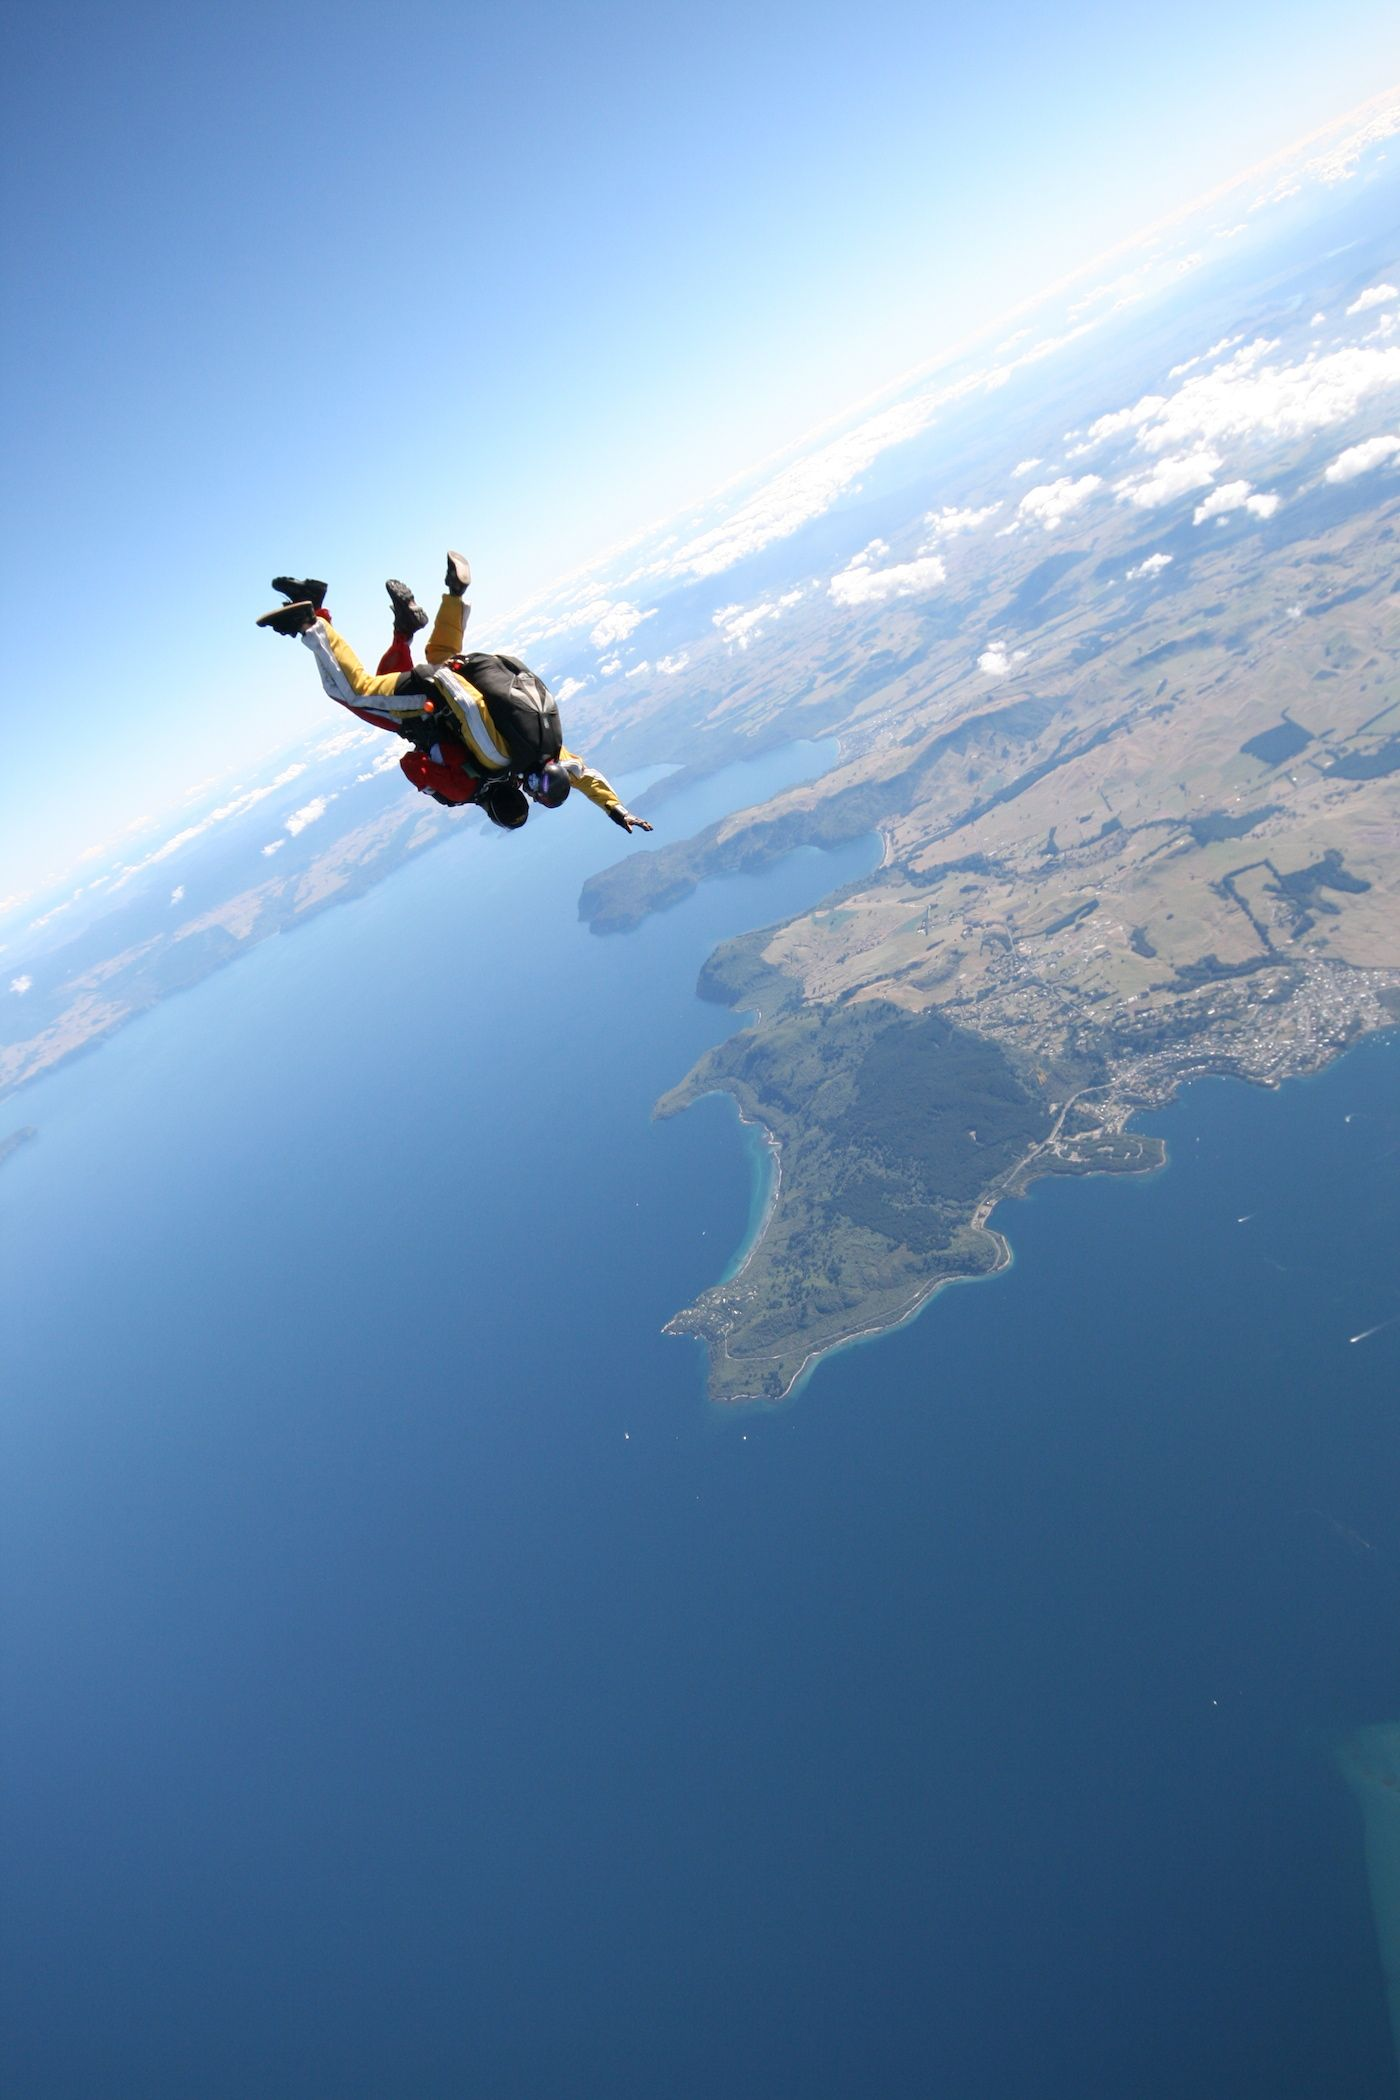 Skydiving is the scariest but most exhilarating thing I